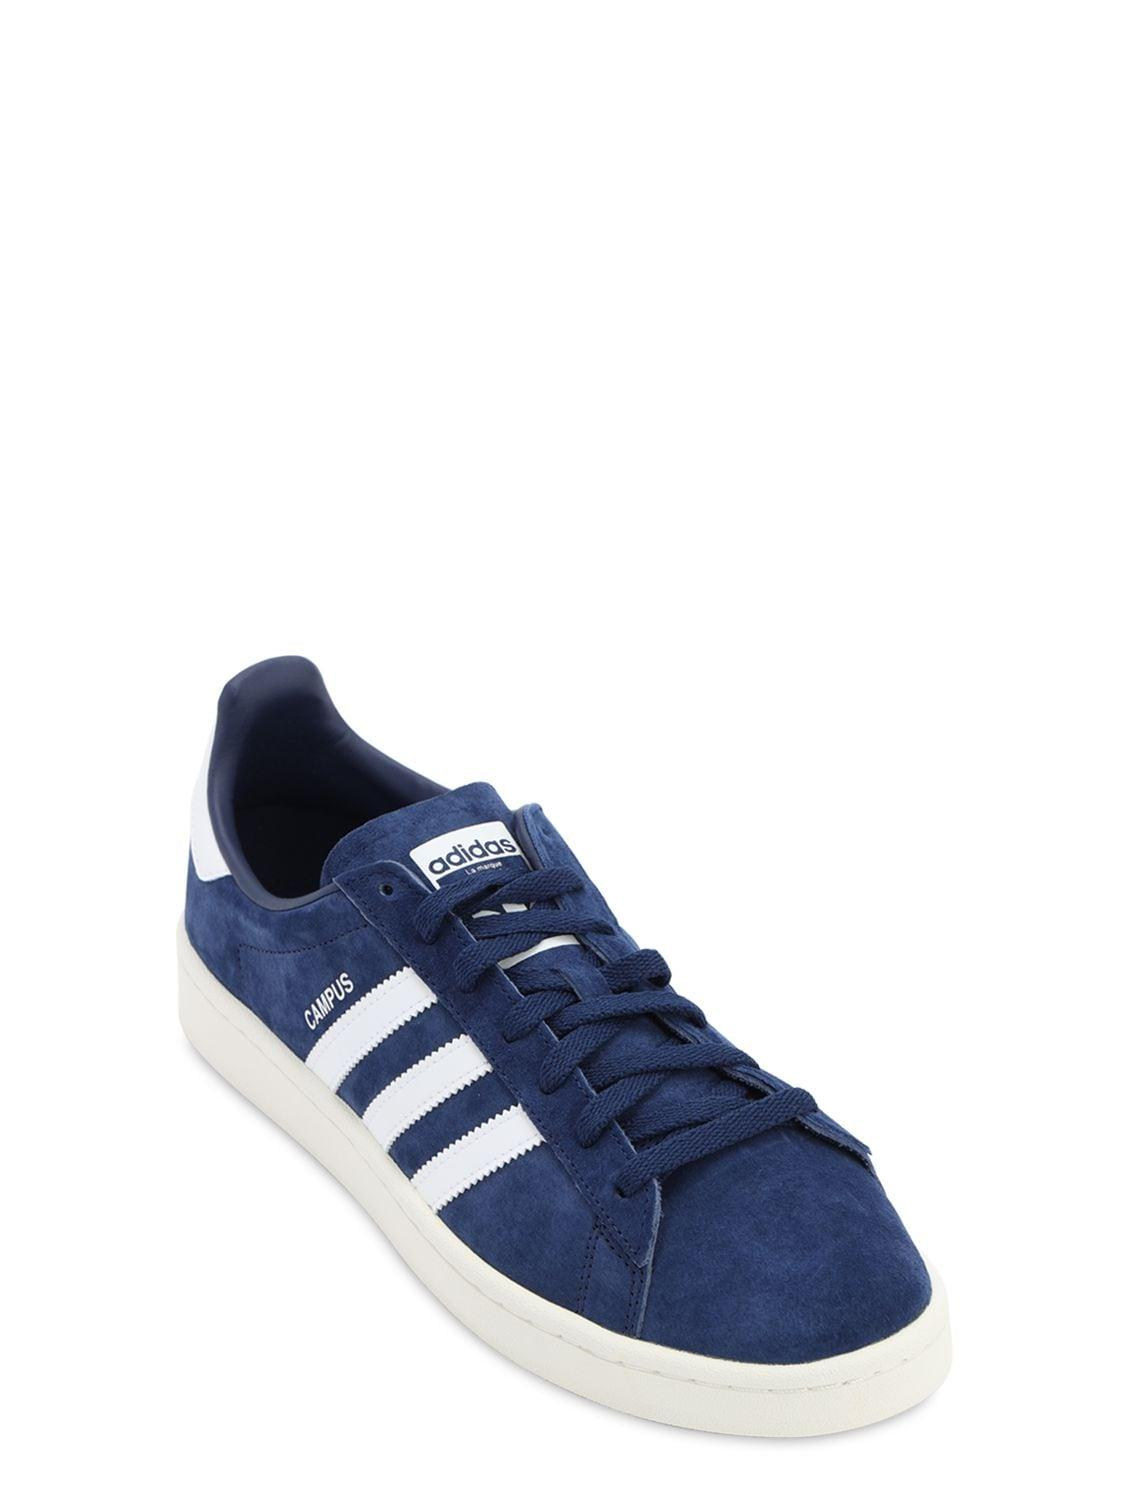 adidas Campus Sneakers in Navy (Blue) for Men - Lyst